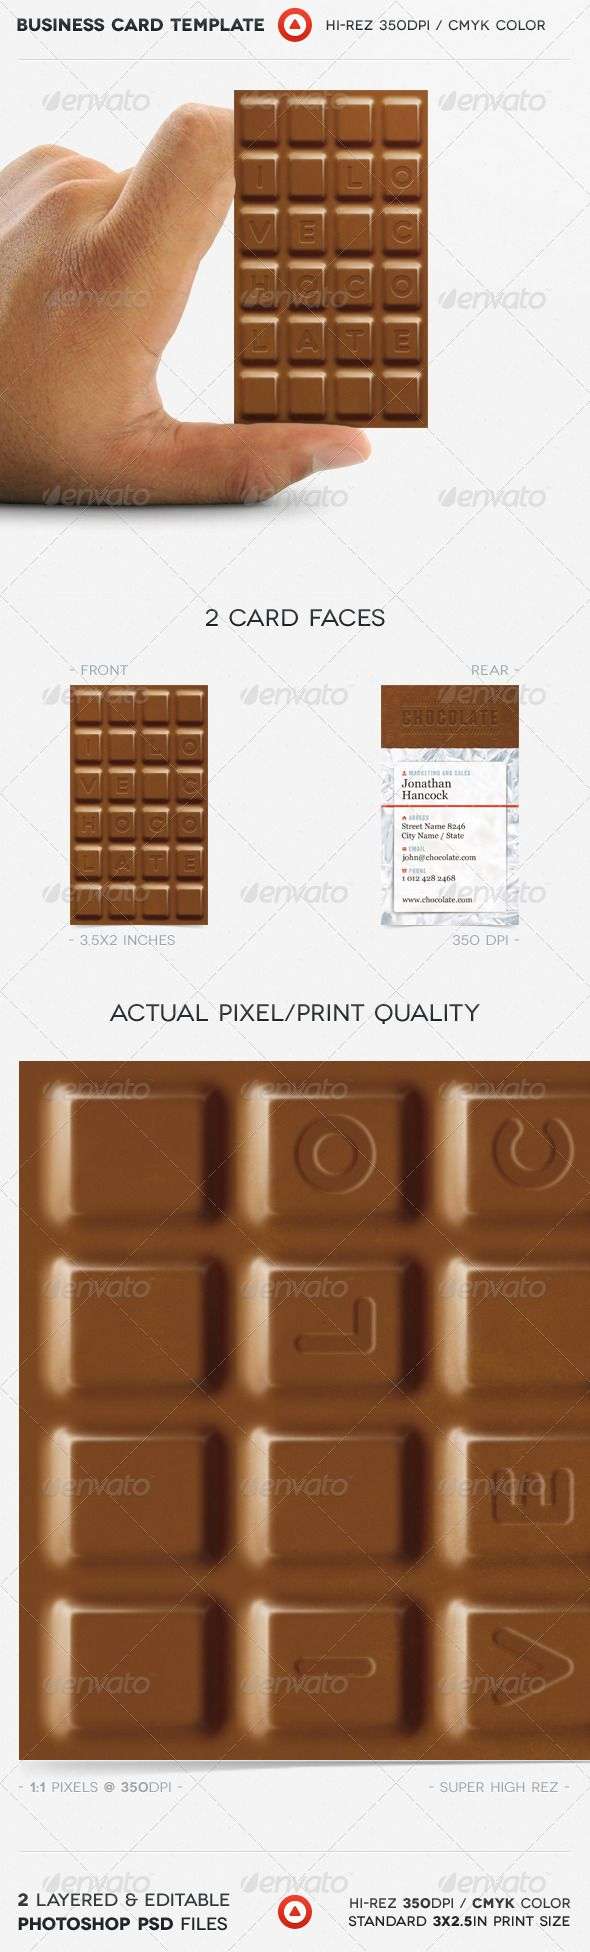 Chocolate Business Card   Business cards, Business and Vector shapes